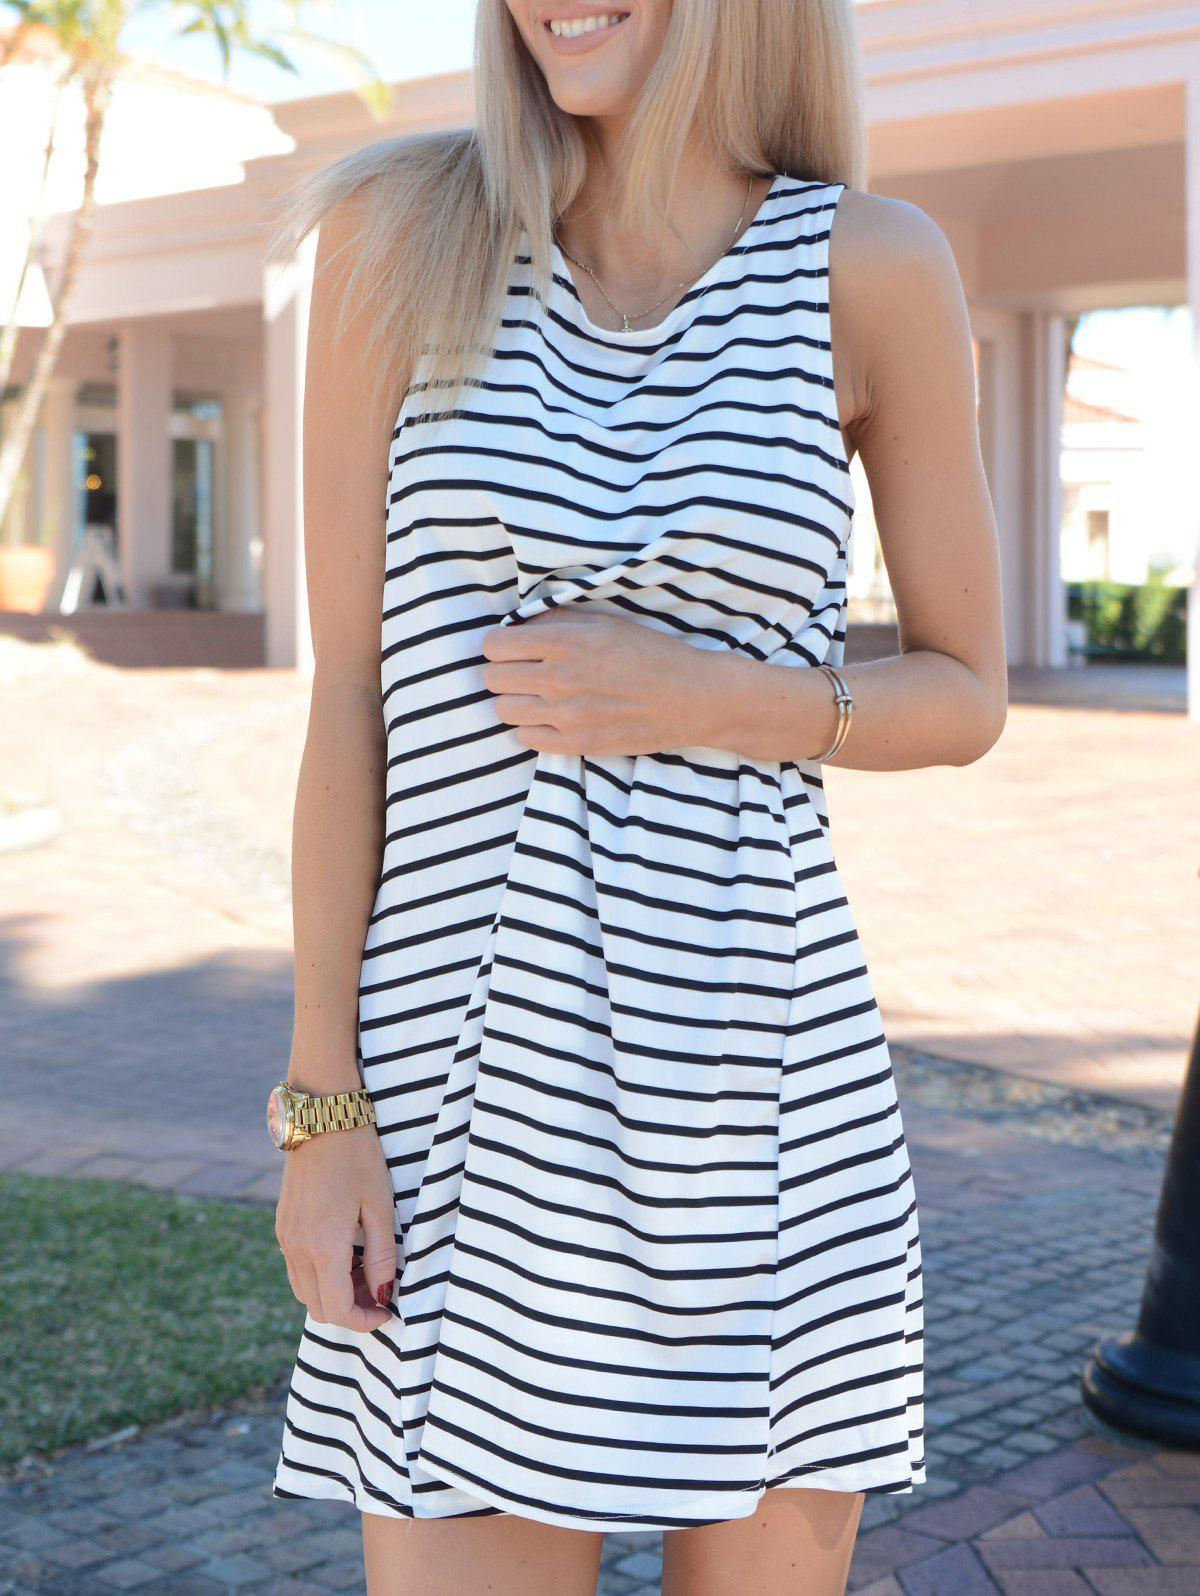 Chic Tunic White Black Sleeveless Striped Dress